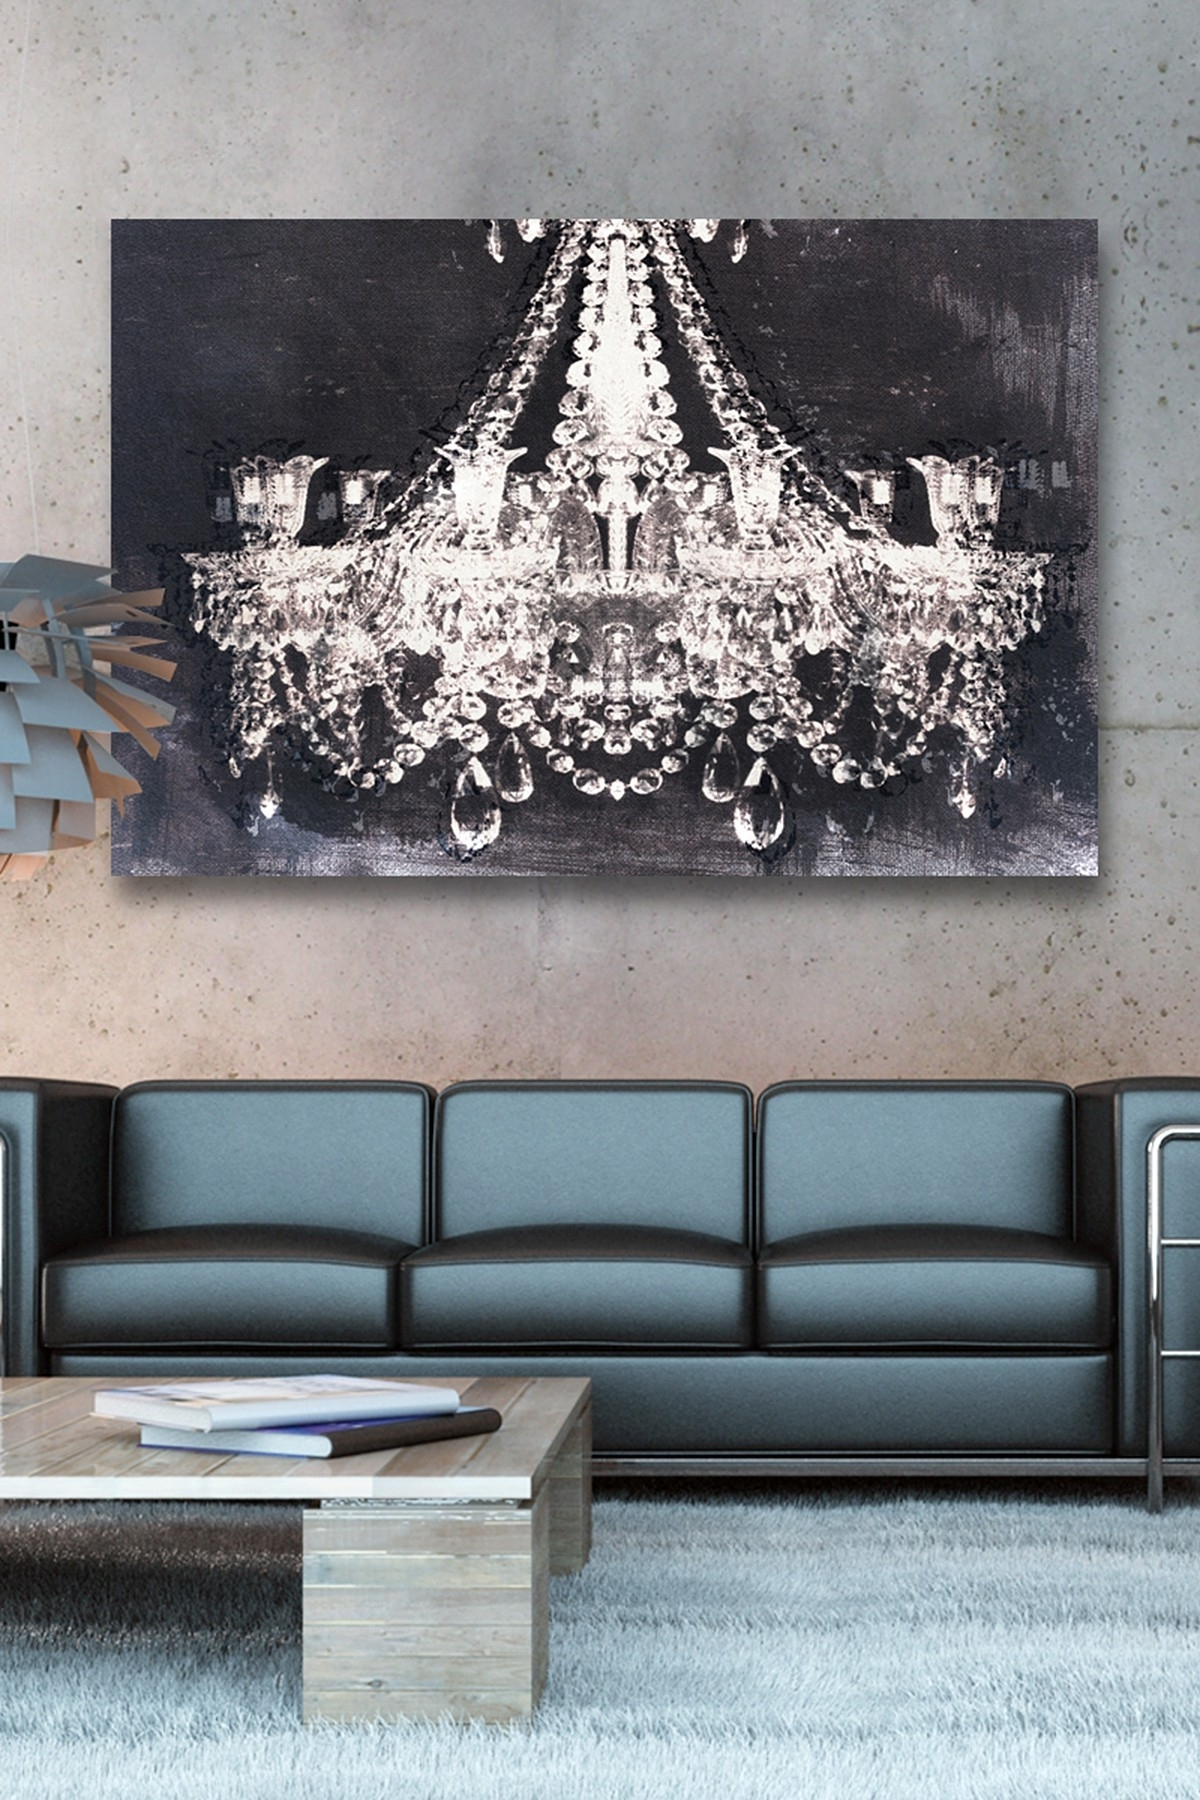 2018 Chandelier Canvas Wall Art With Oliver Gal Dramatic Entrance Night Canvas Wall Art (View 1 of 15)